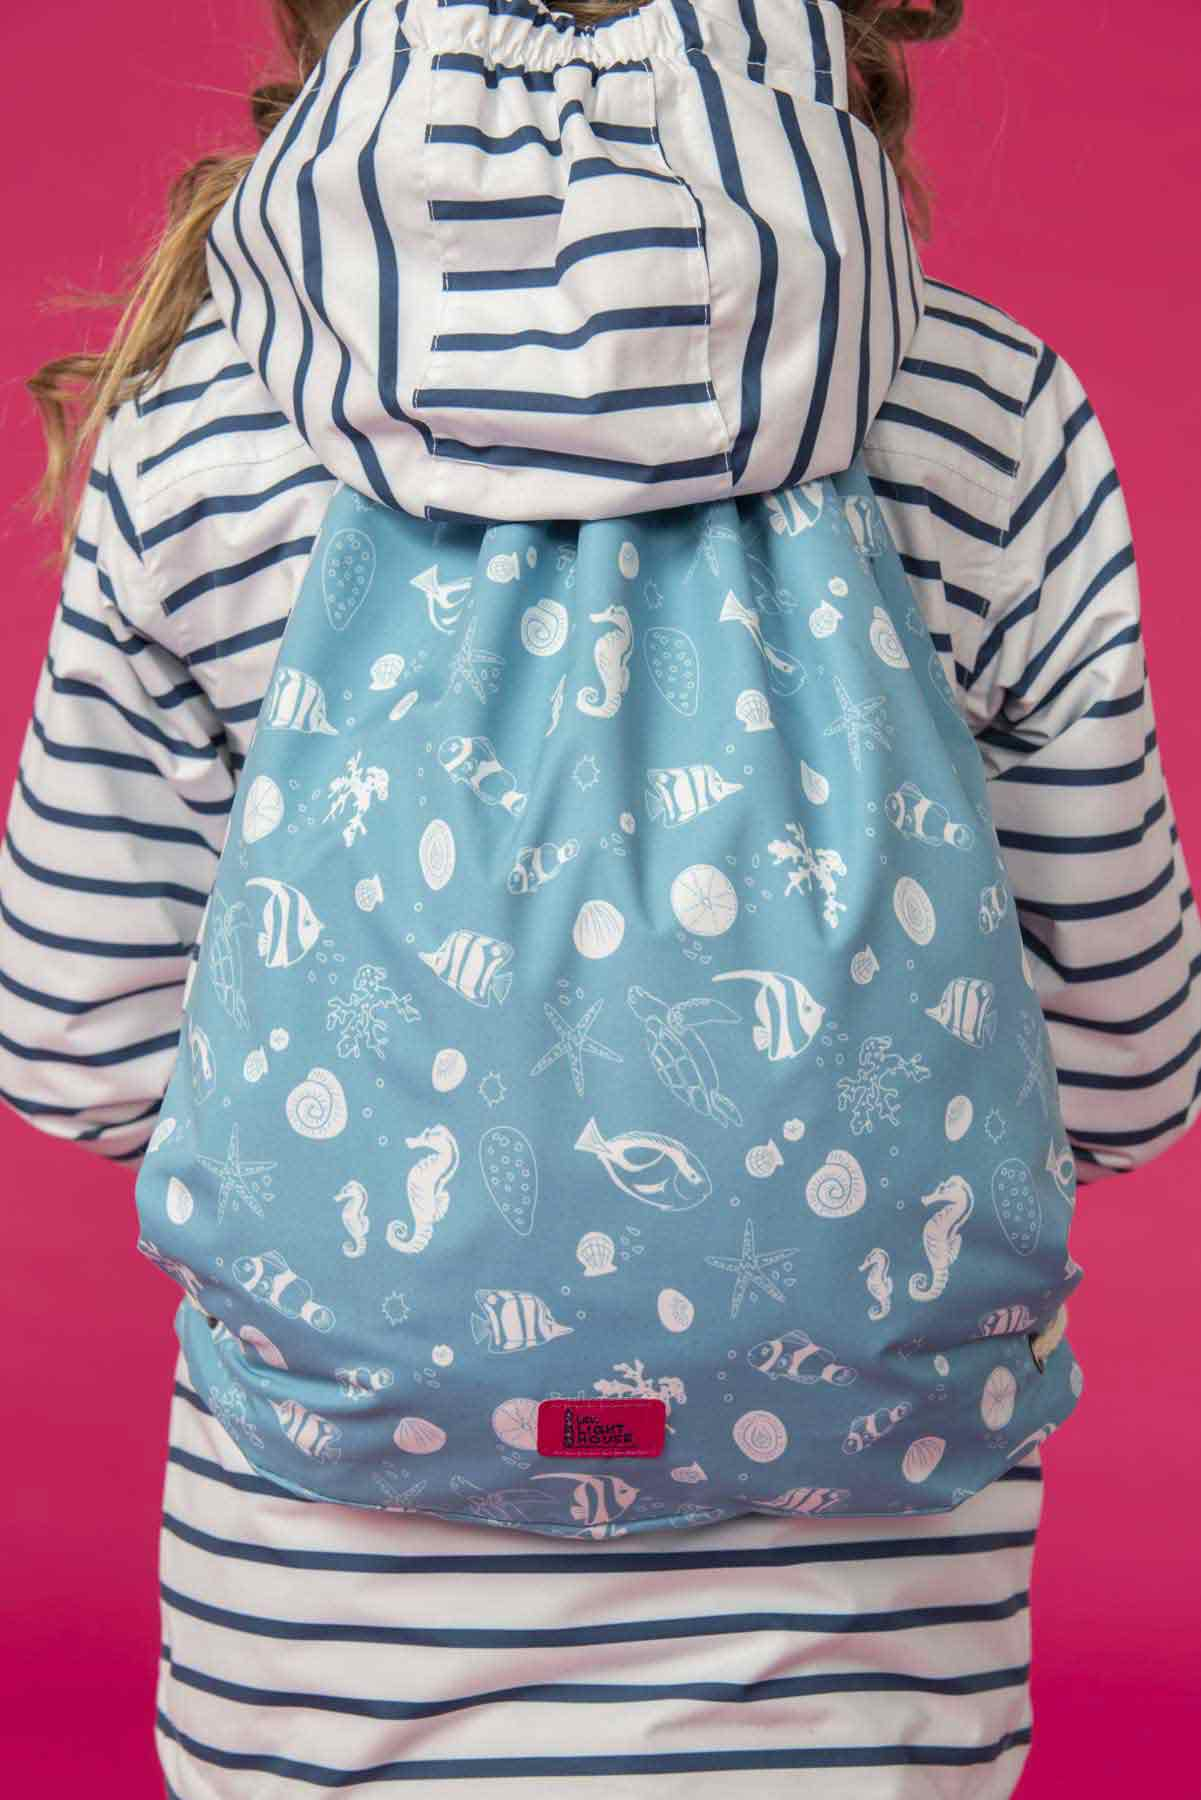 Girl's teal waterproof drawstring bag